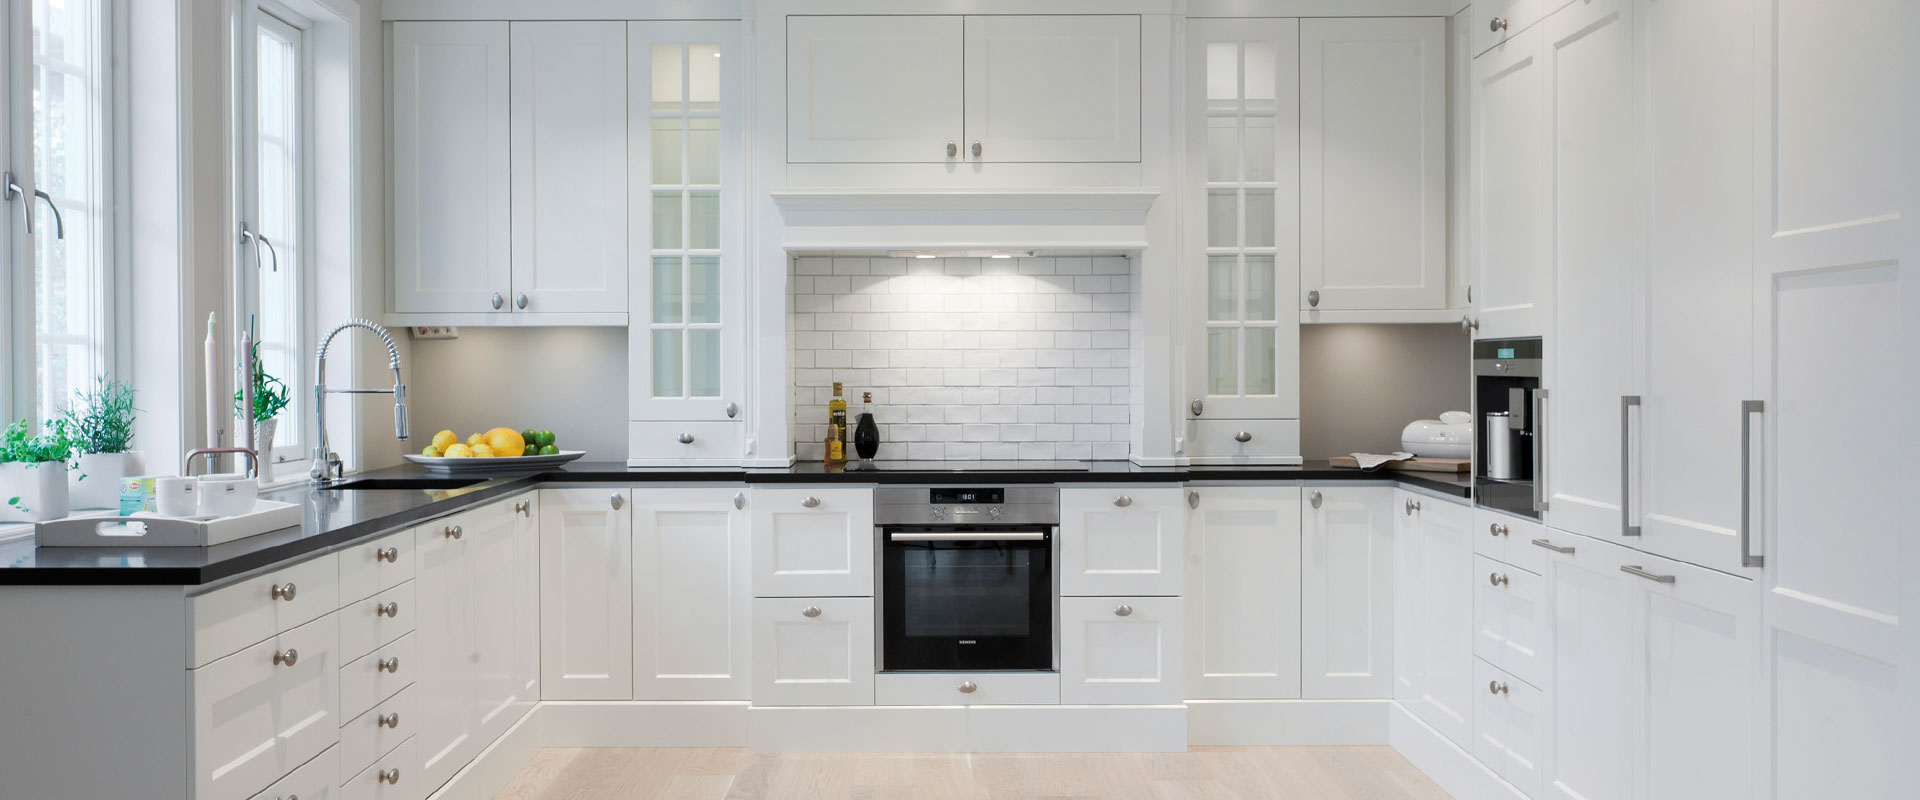 Image Result For White Walls White Kitchen Cabinets